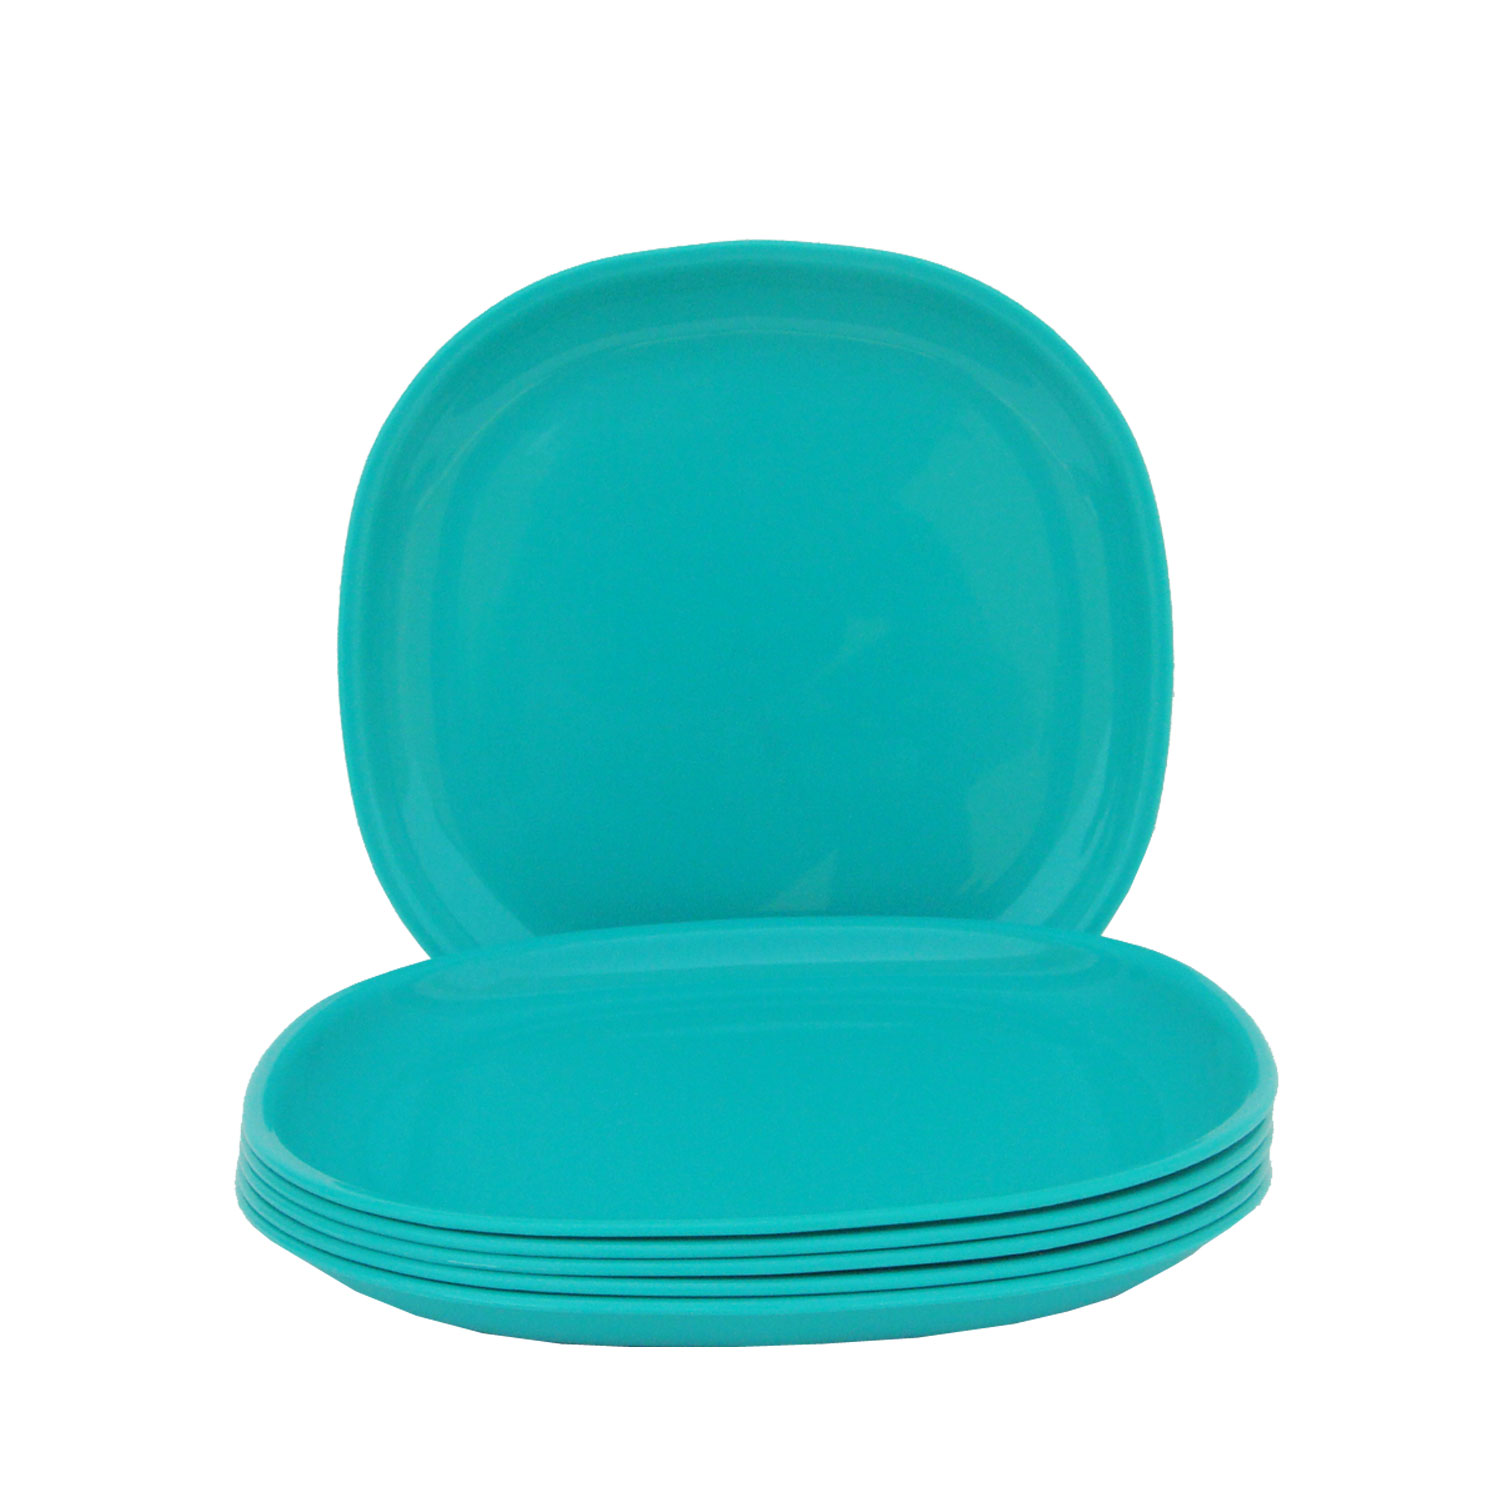 Incrizma   Square Dinner Plate Turquoise Green  6 Pcs